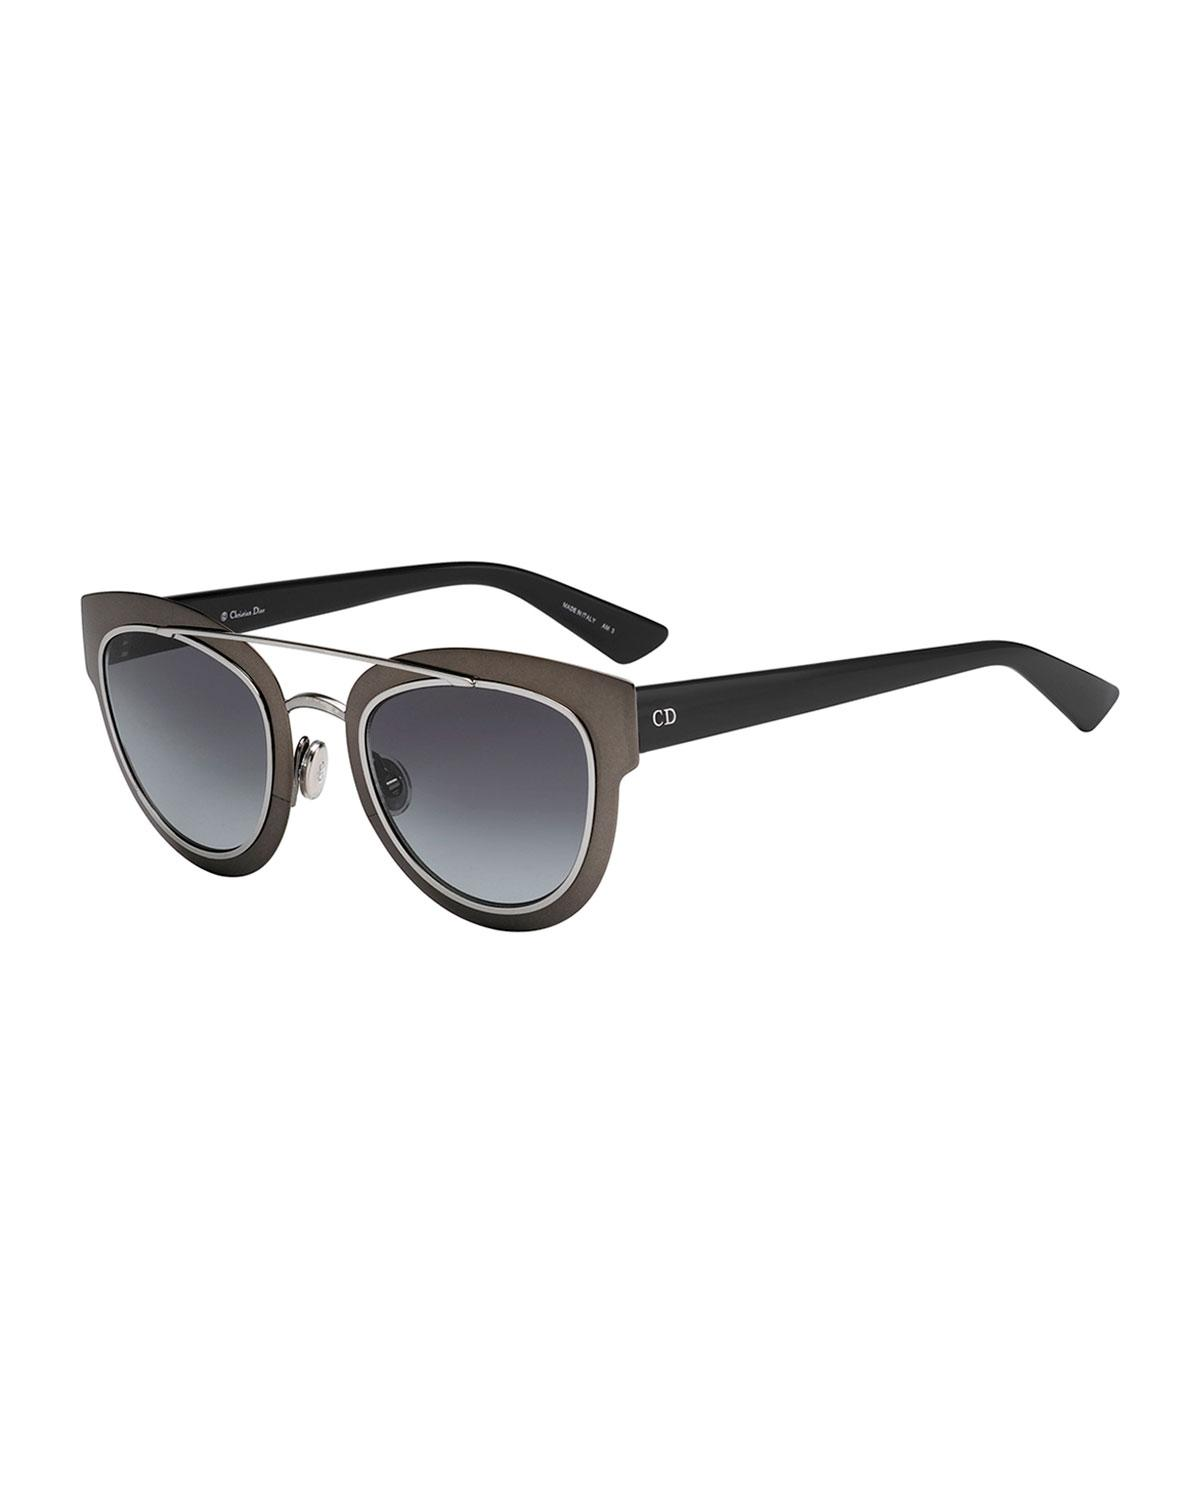 925b5feedd1 Lyst - Dior Chromic Sunglasses in Black